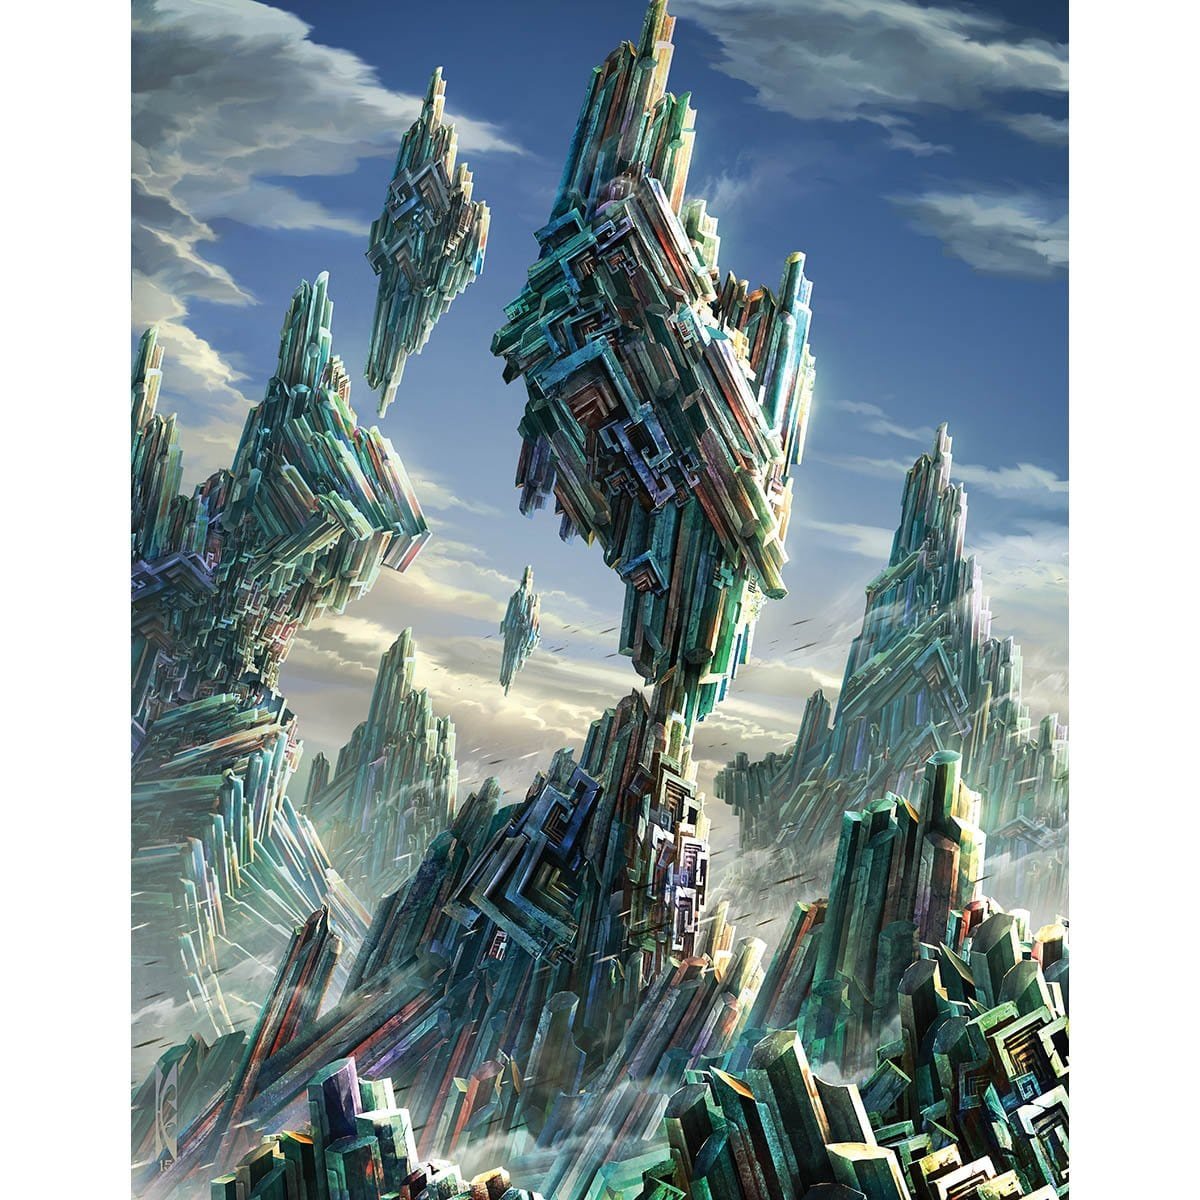 Wastes Print - Print - Original Magic Art - Accessories for Magic the Gathering and other card games